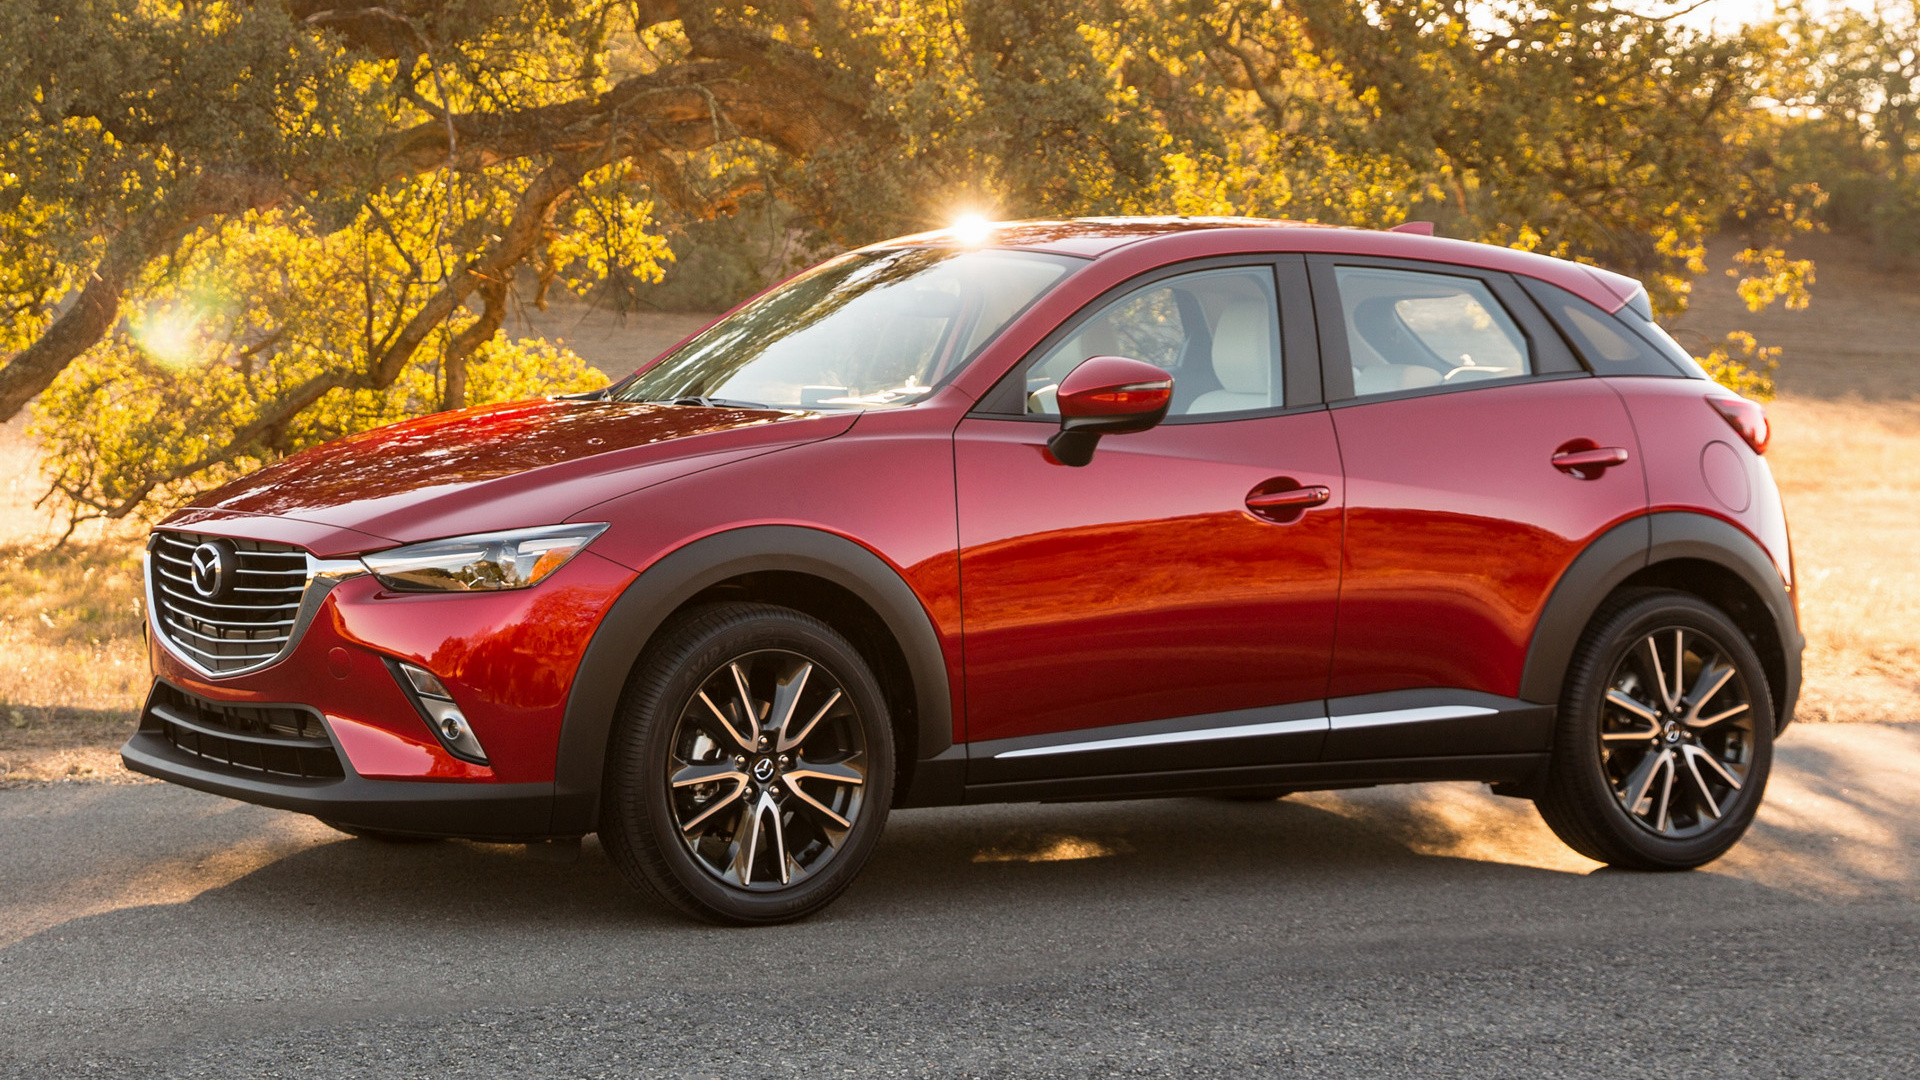 2019 Mazda Cx 3 >> Mazda CX-3 (2016) US Wallpapers and HD Images - Car Pixel